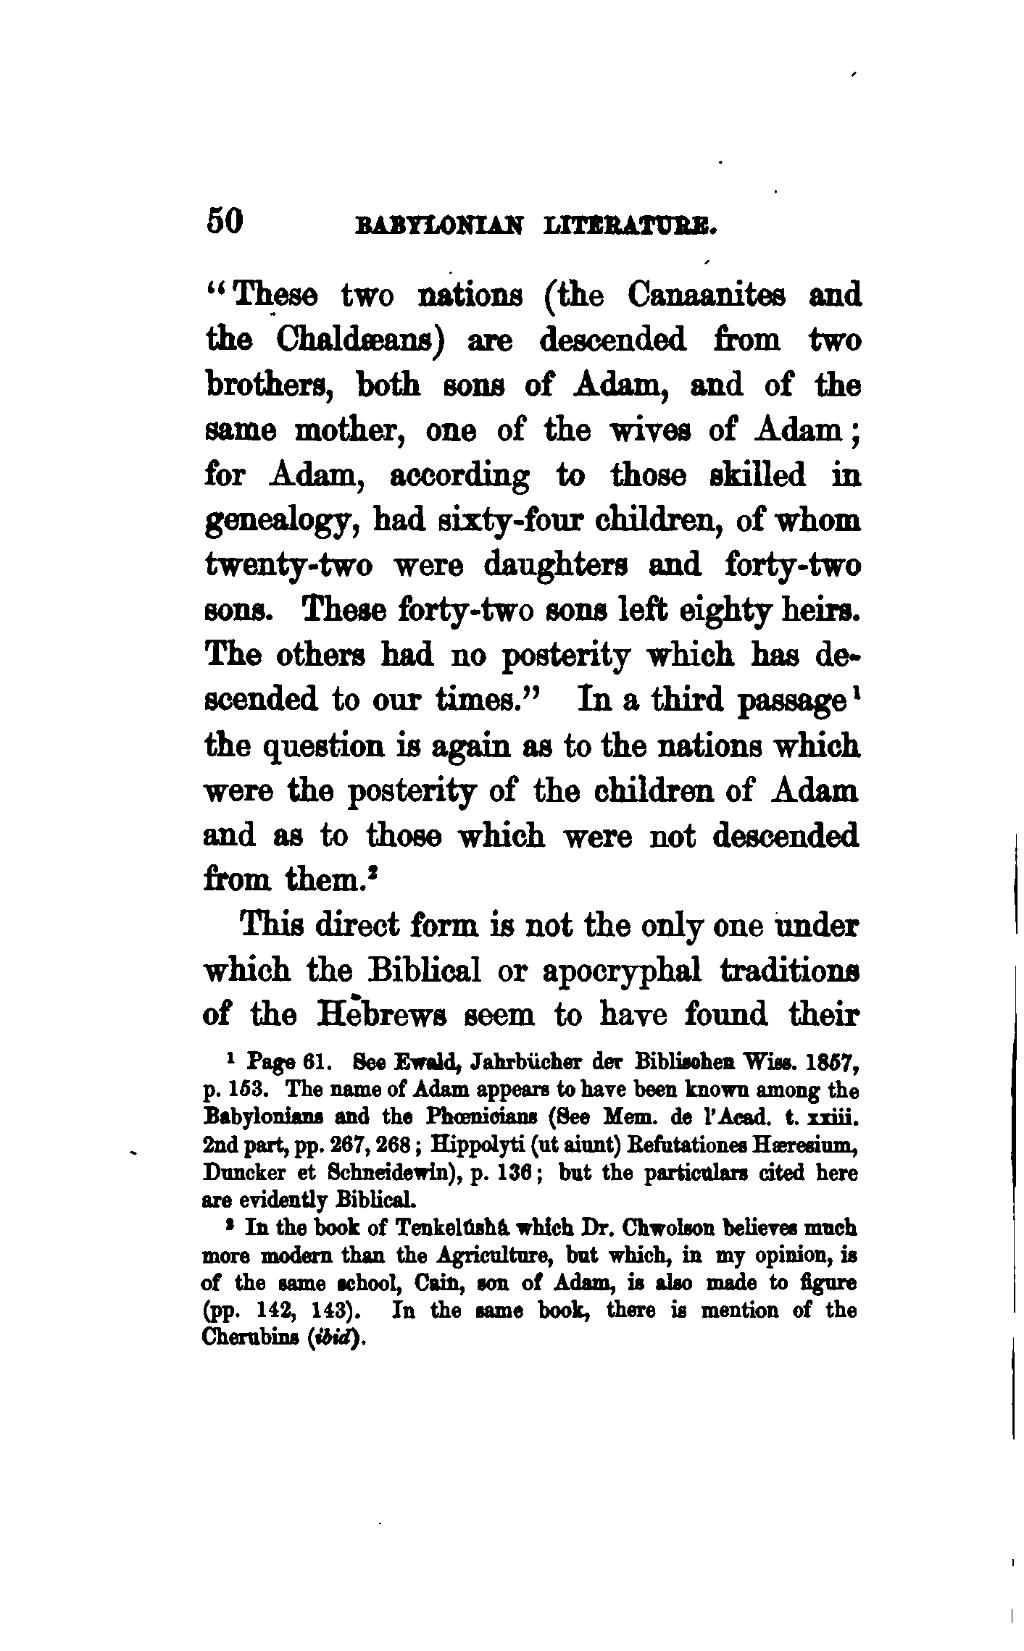 page an essay on the age and antiquity of the book of nabathaean   is of the same school cain son of adam is also made to figure pp 142 143 in the same book there is mention of the cherubins ibid